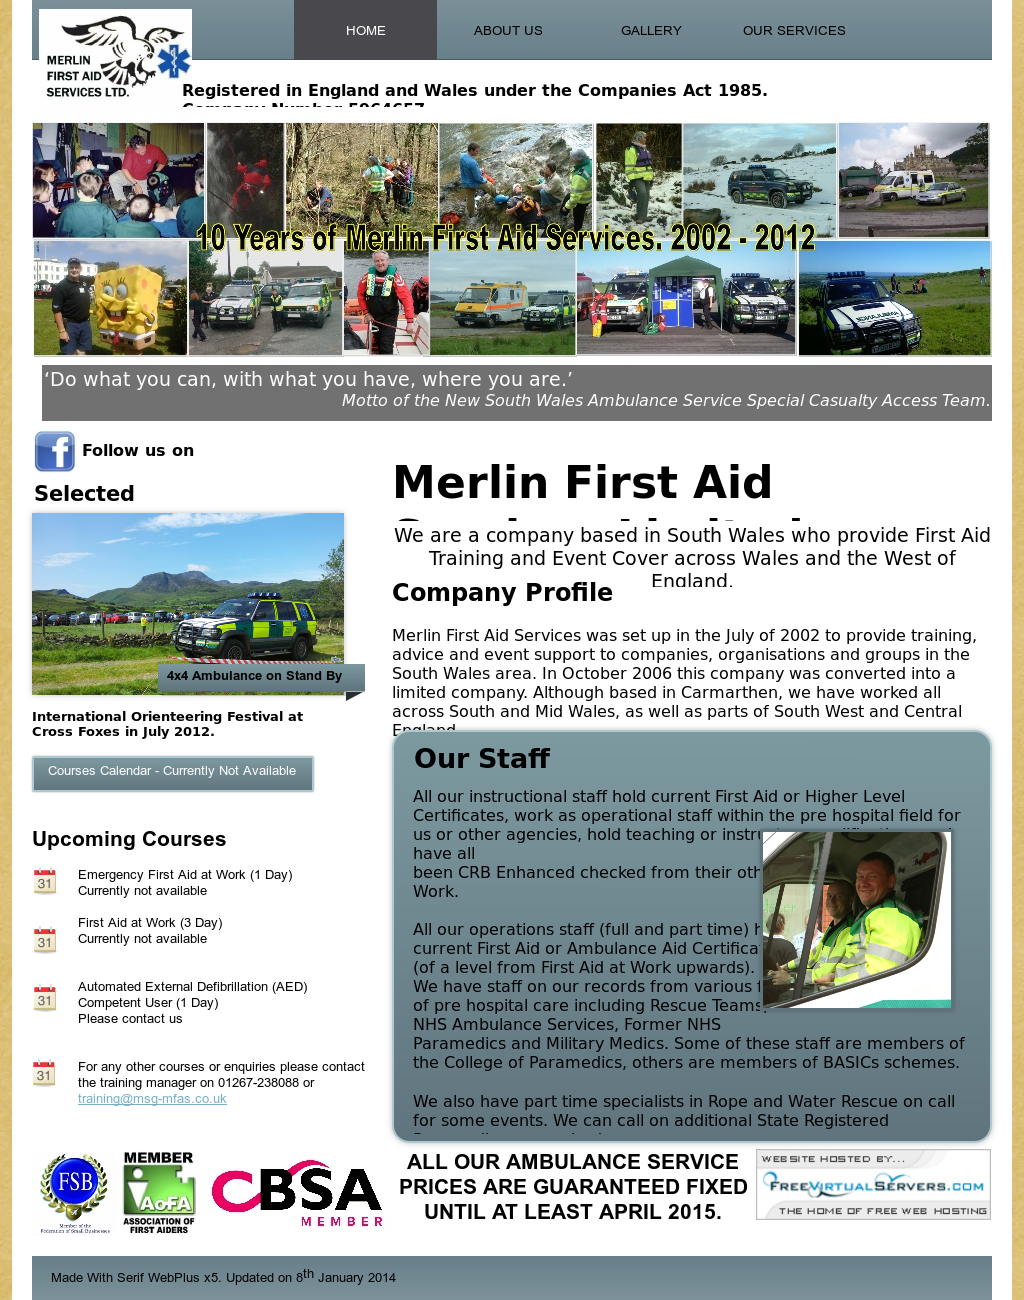 Merlin First Aid Services Competitors, Revenue and Employees